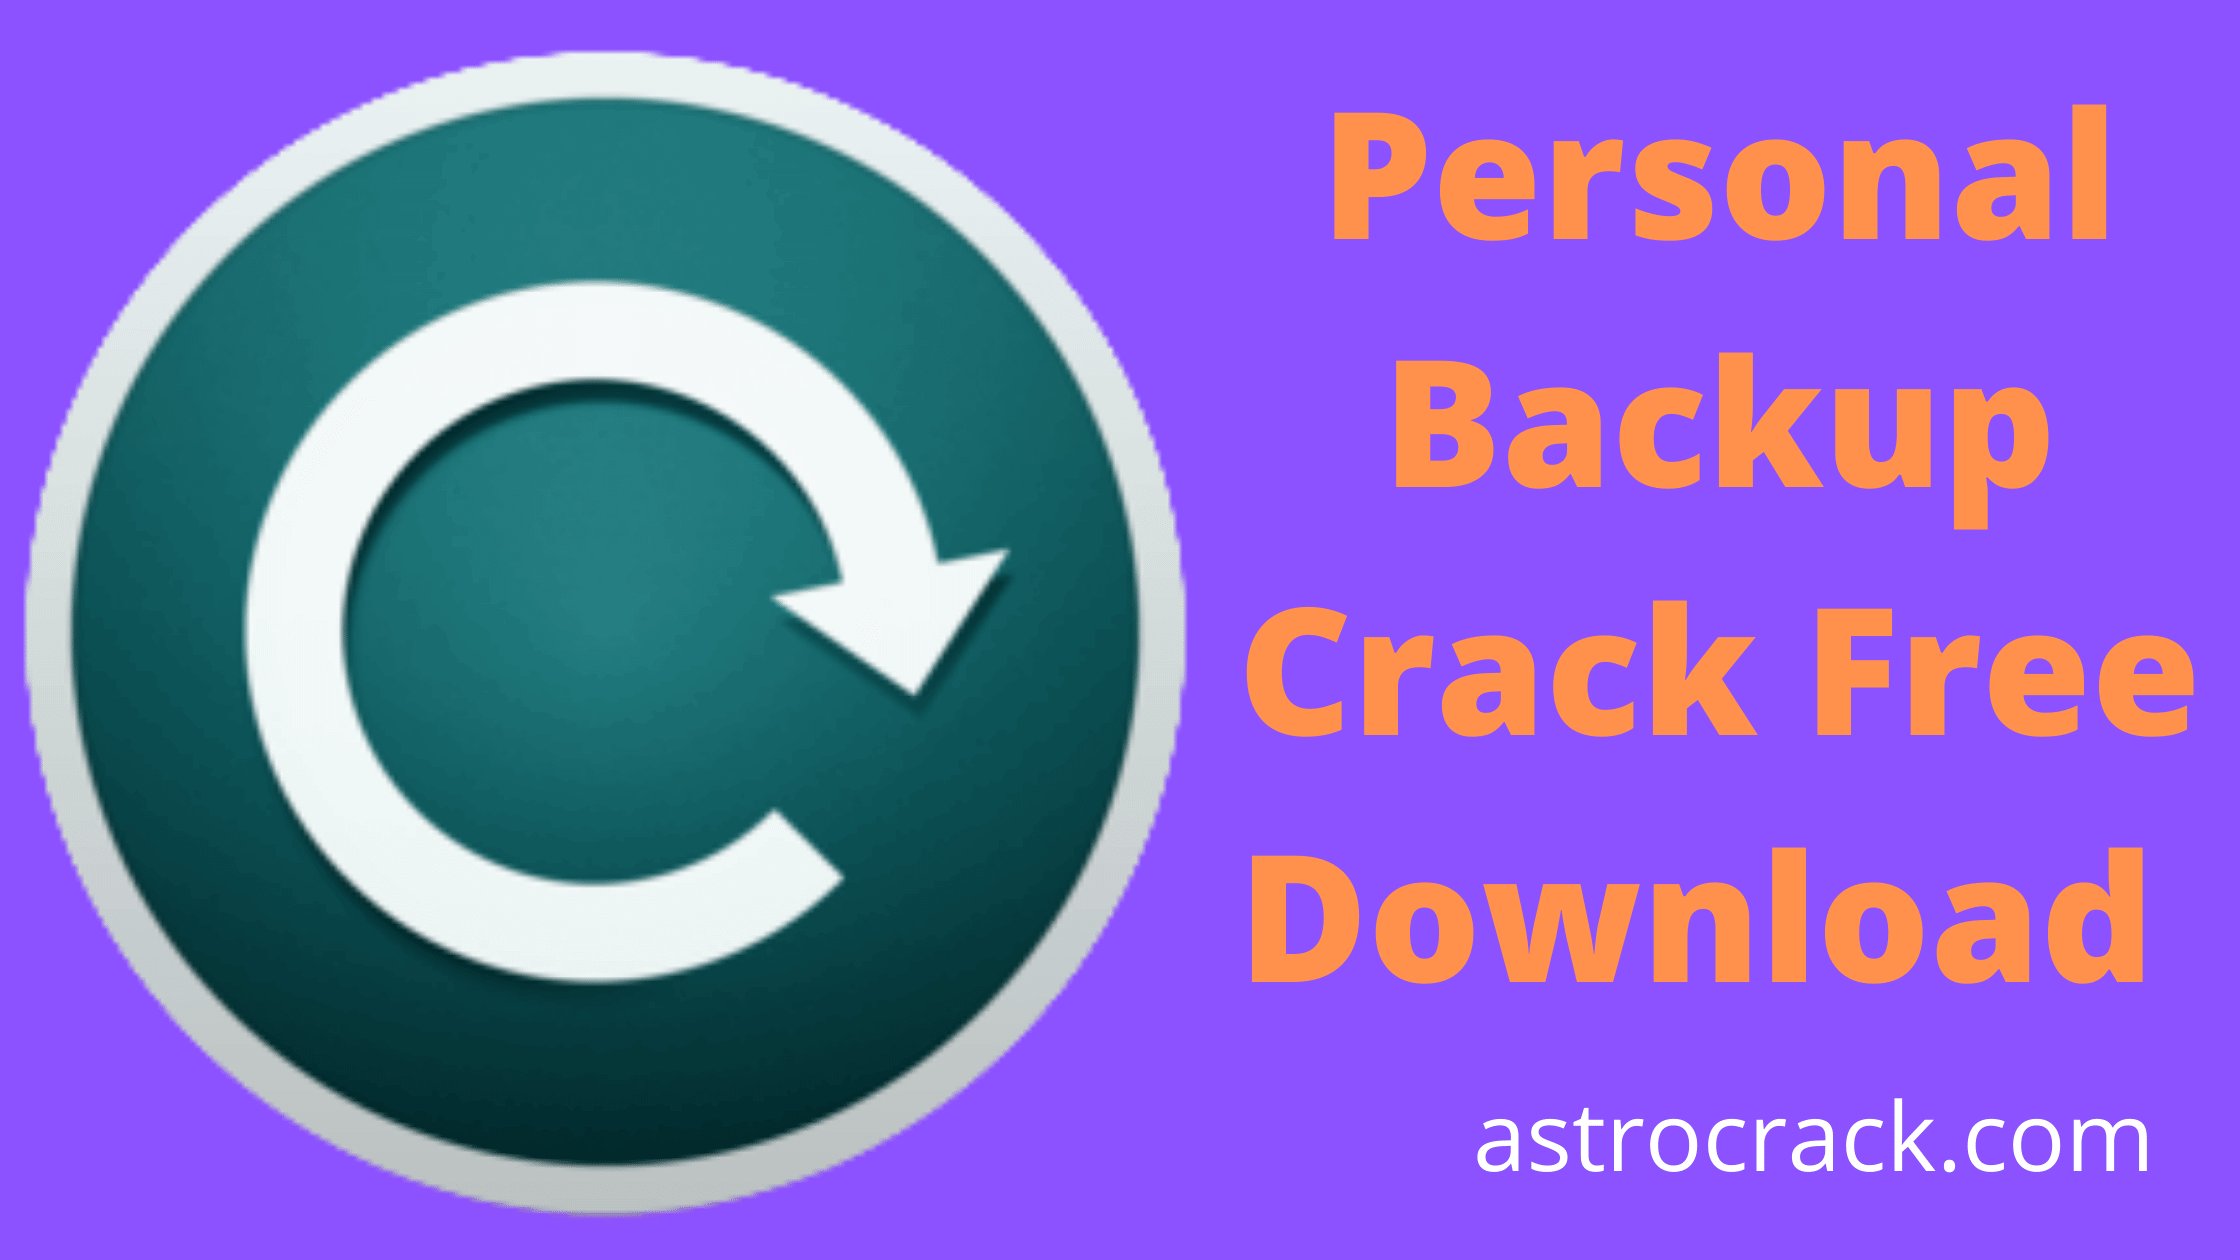 Personal Backup, Personal Backup crack, Personal Backup crack download, Personal Backup Crack patched, Personal Backup download